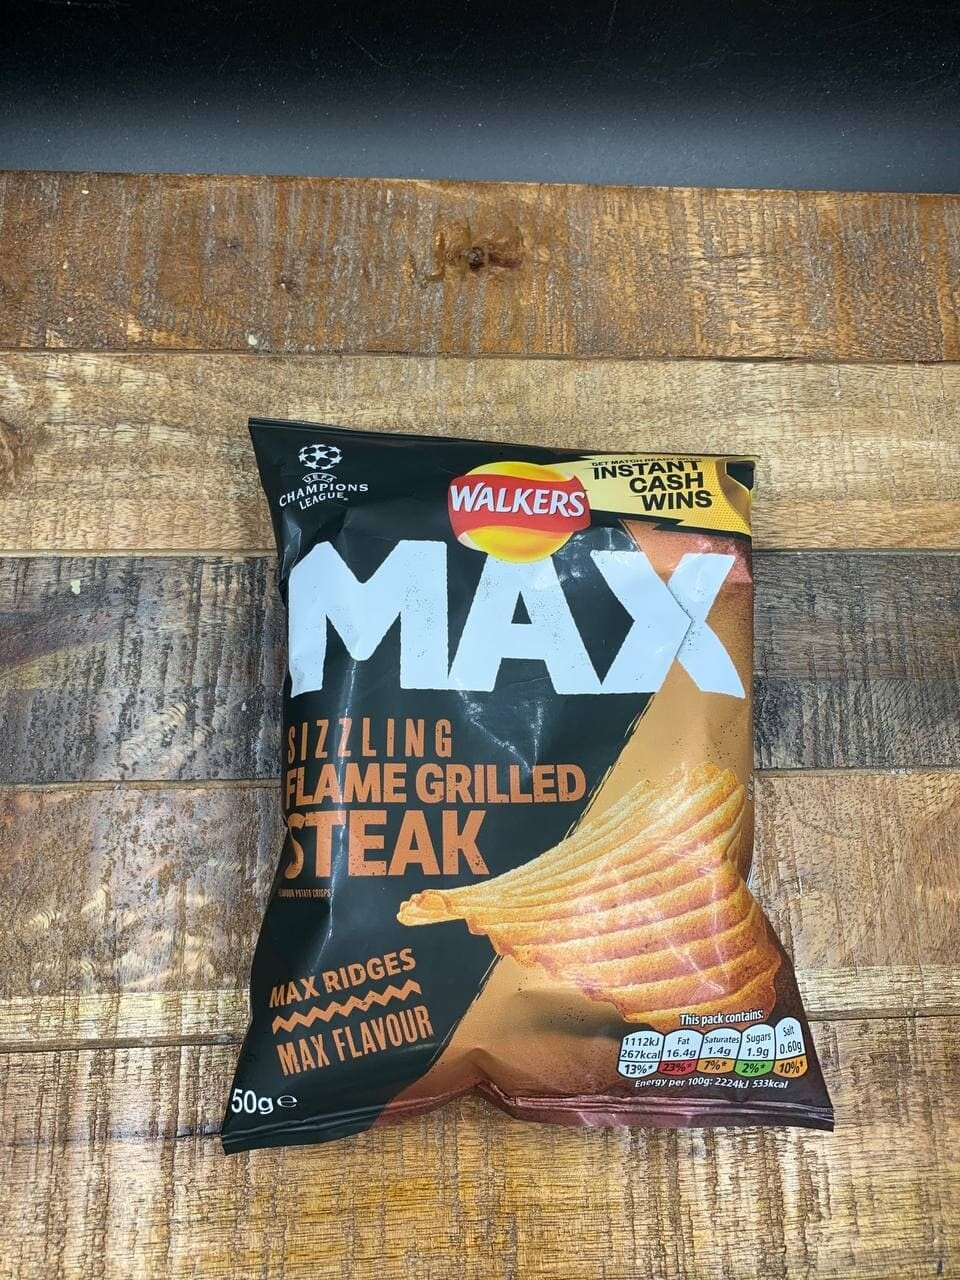 Walkers Max Flame Grilled Steak 50g